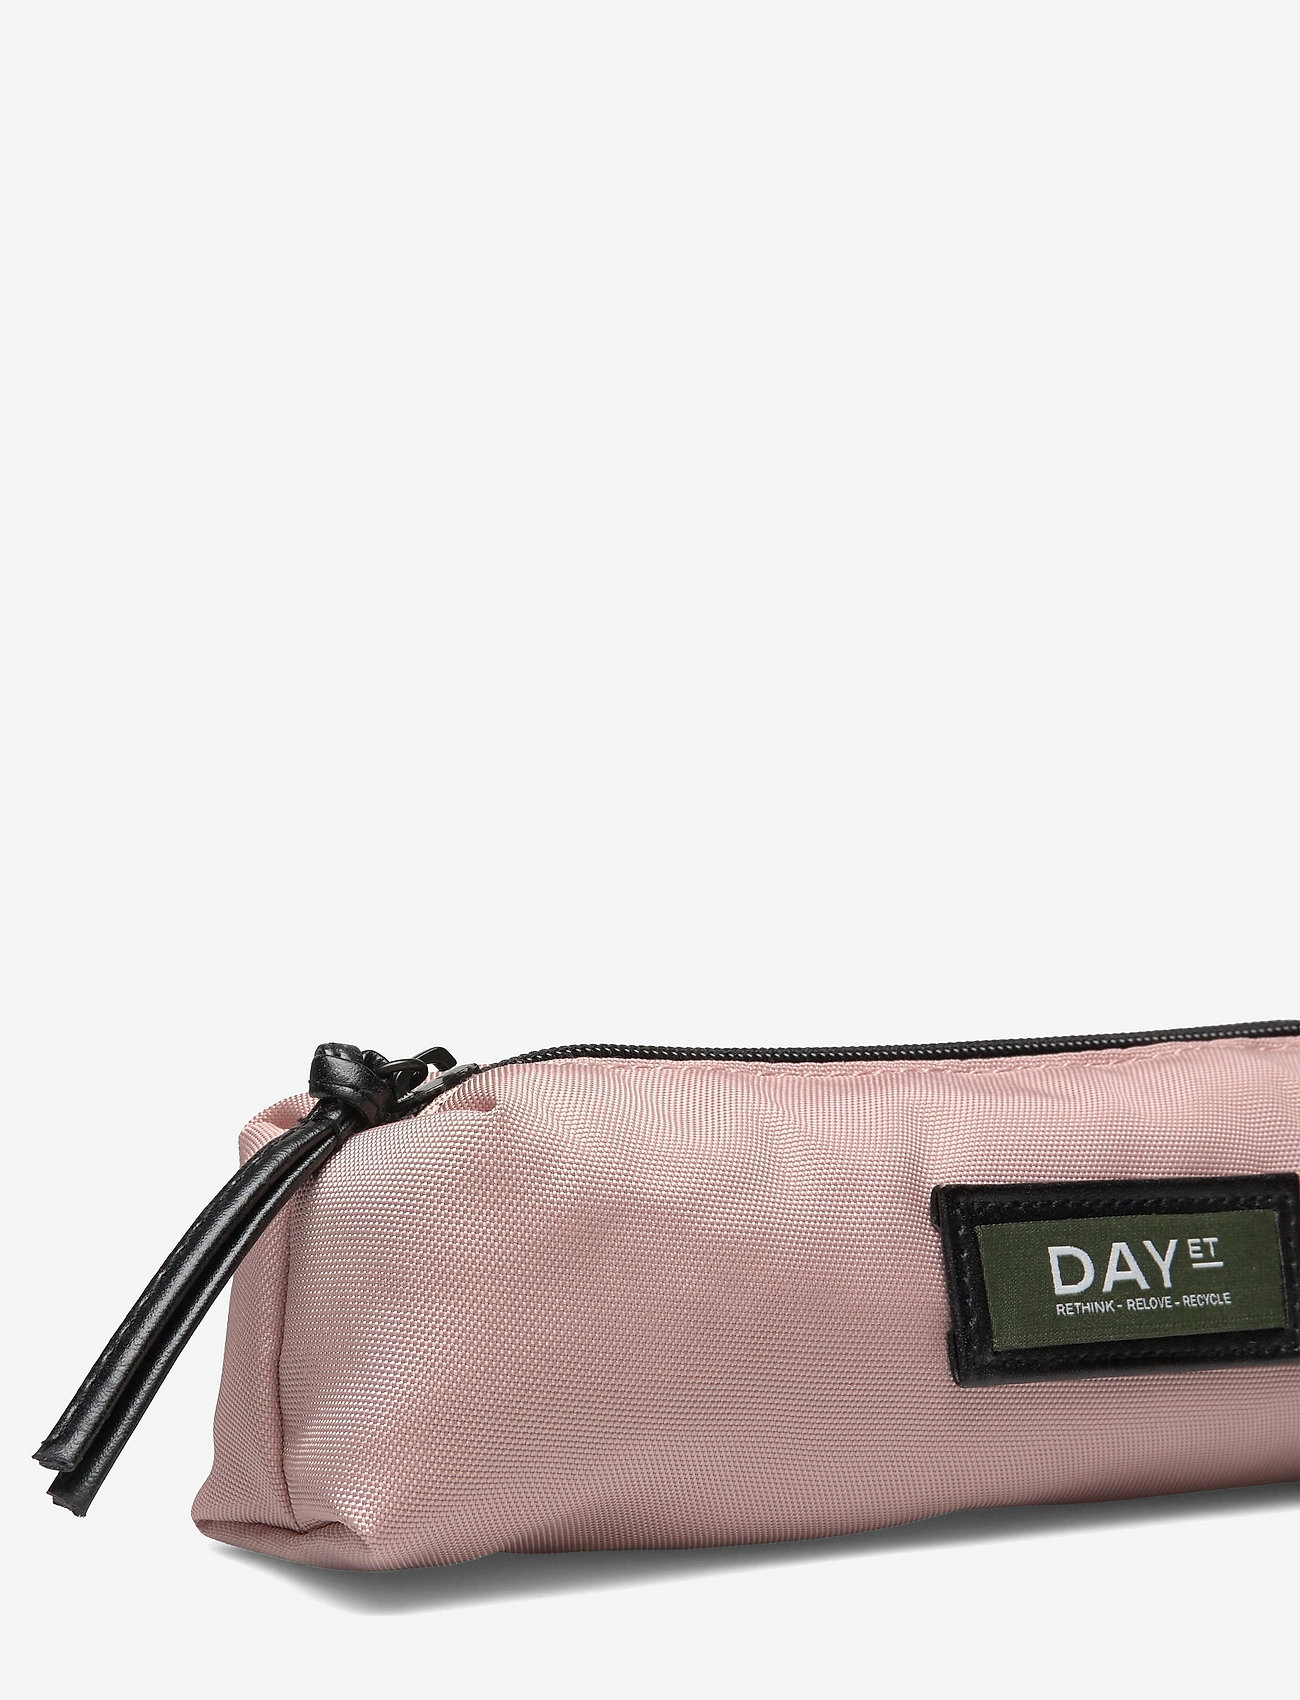 DAY et - Day Gweneth RE-S Pencil - accessories - adobe rose - 3